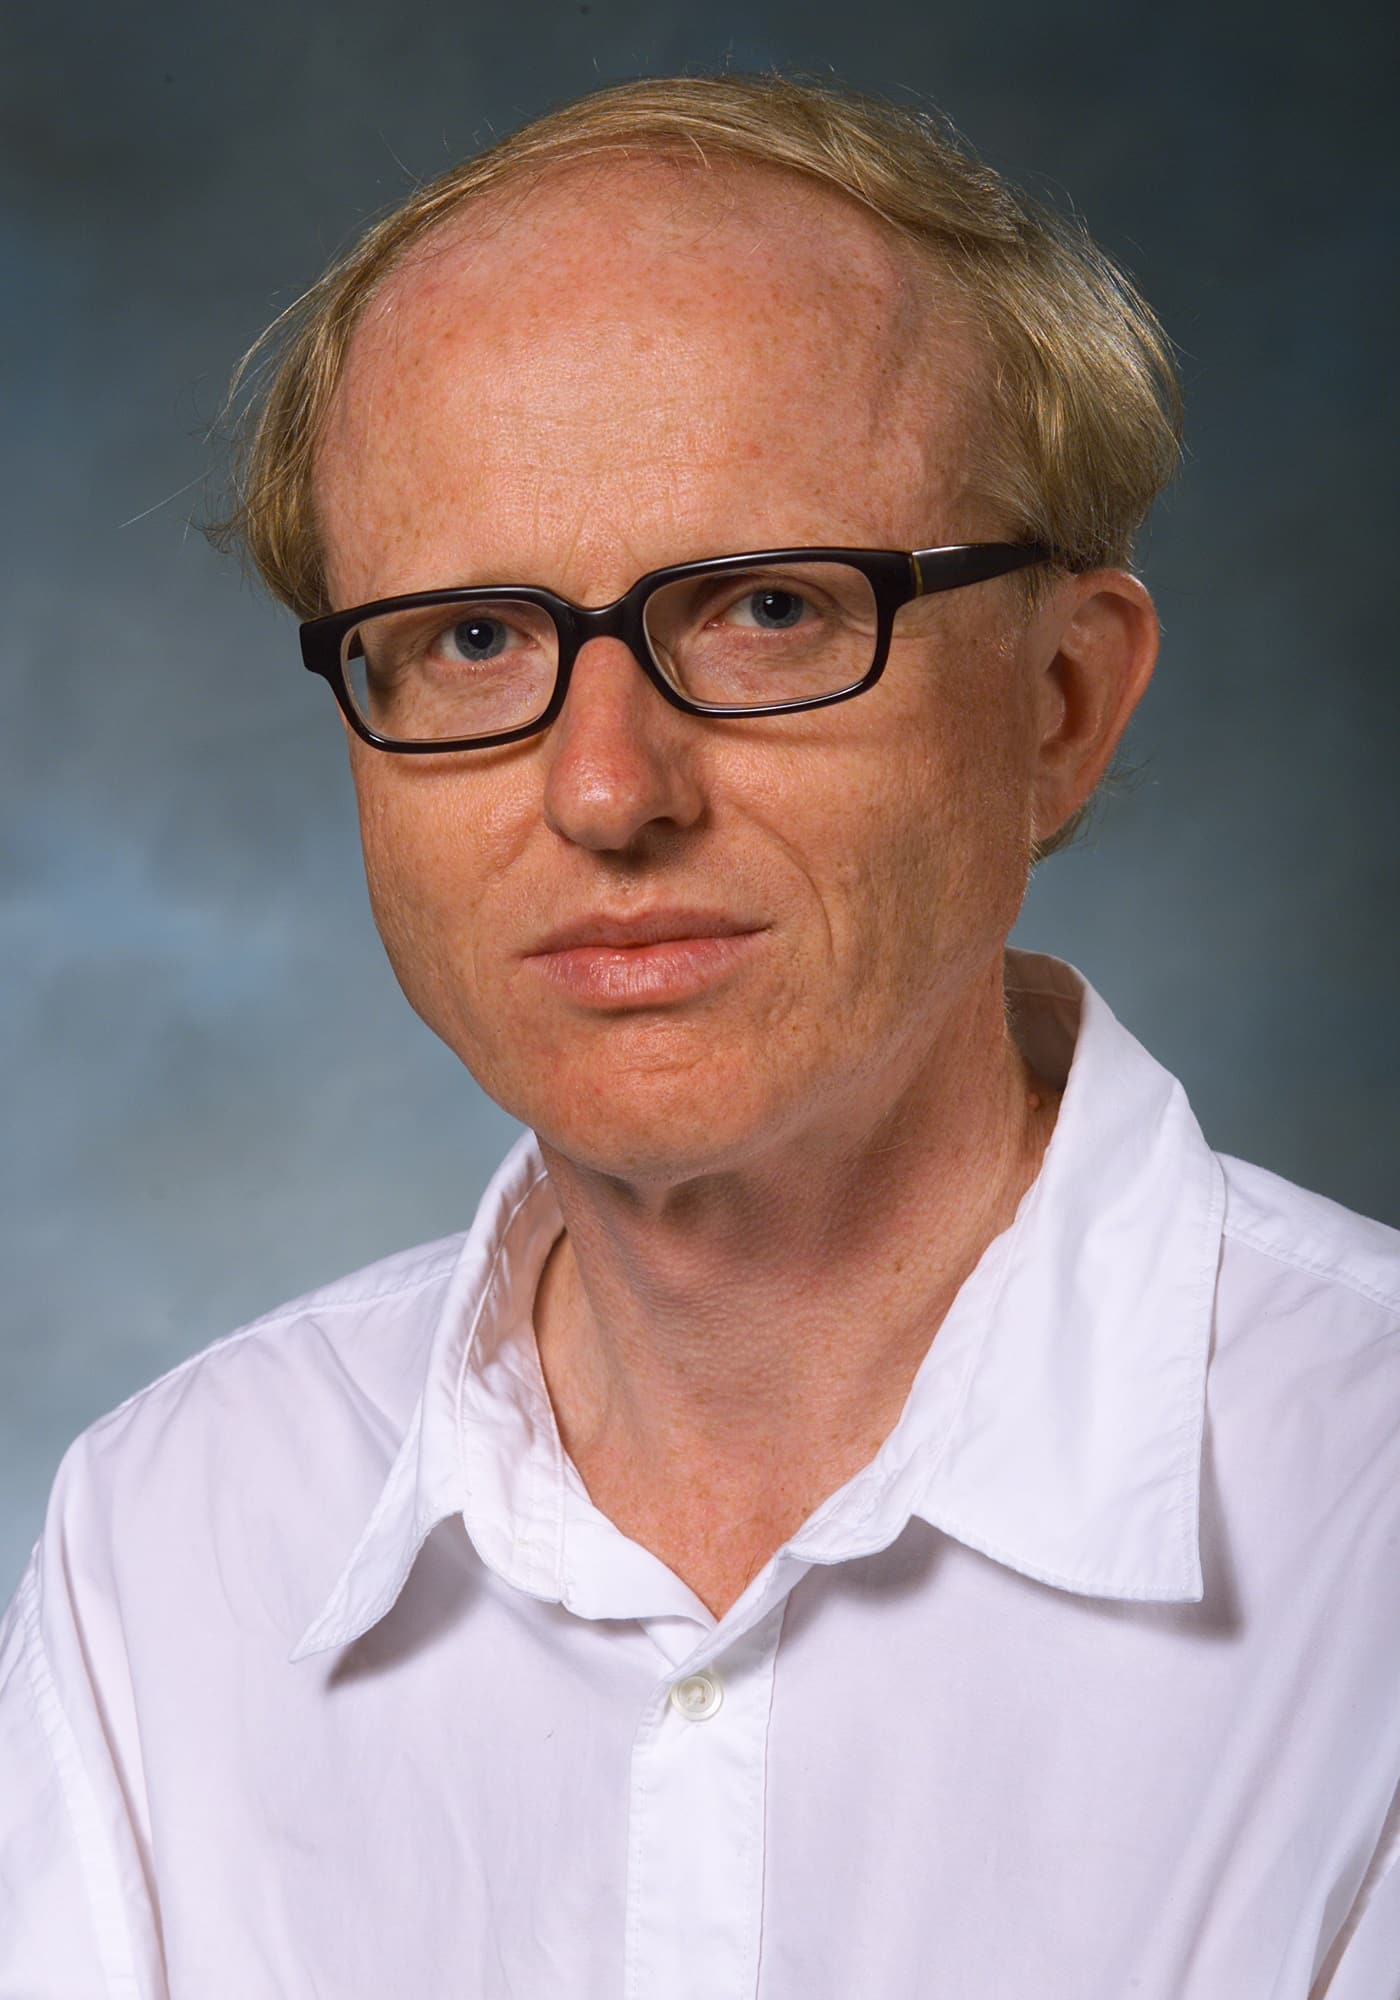 Professor Mats Rooth headshot